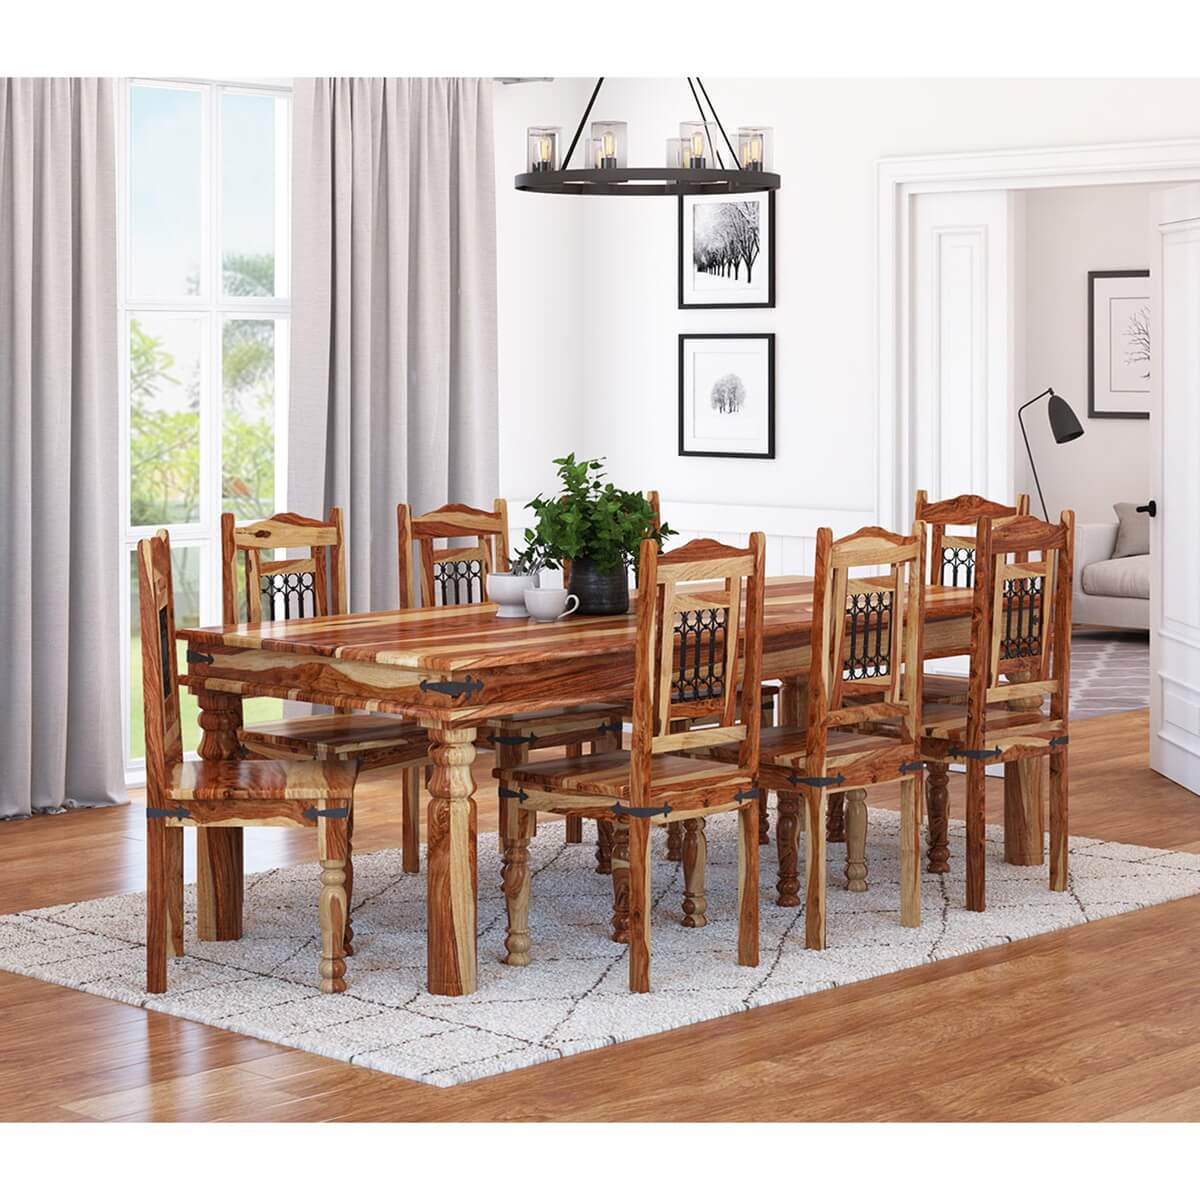 Dining Room Table And Chair Sets Of Dallas Classic Solid Wood Rustic Dining Room Table And